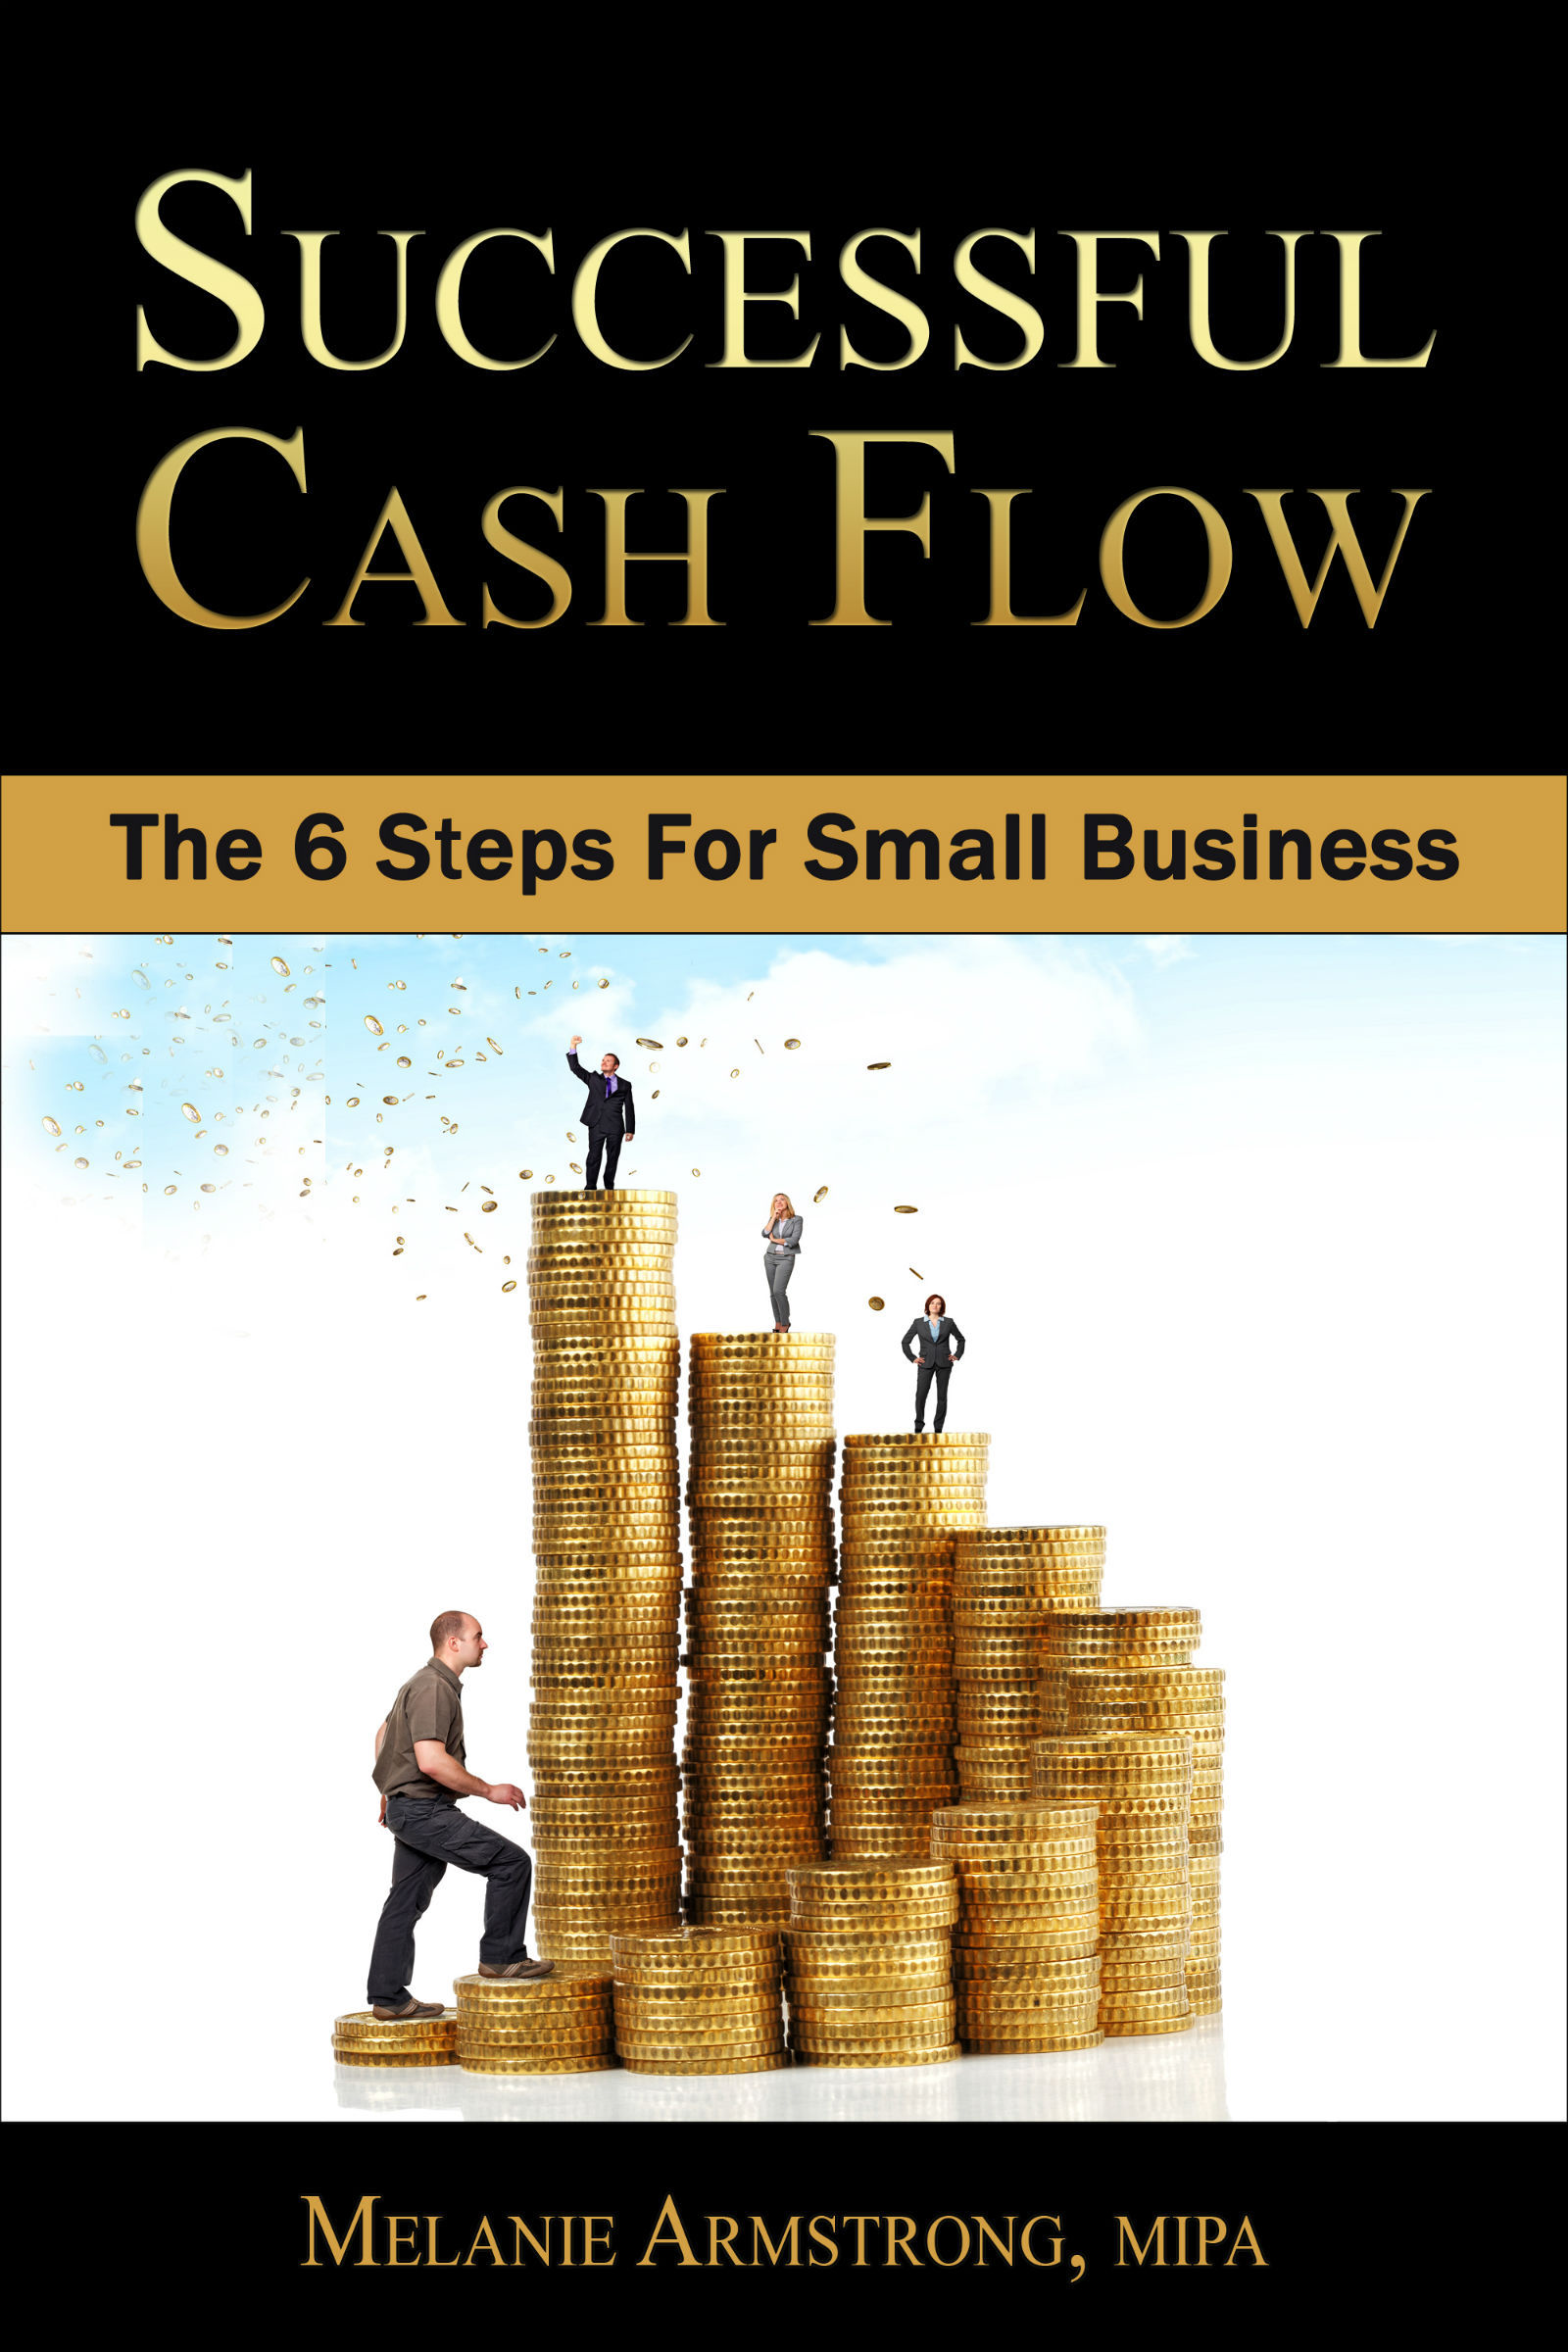 Successful Cash Flow; The 6 Steps for Small Business